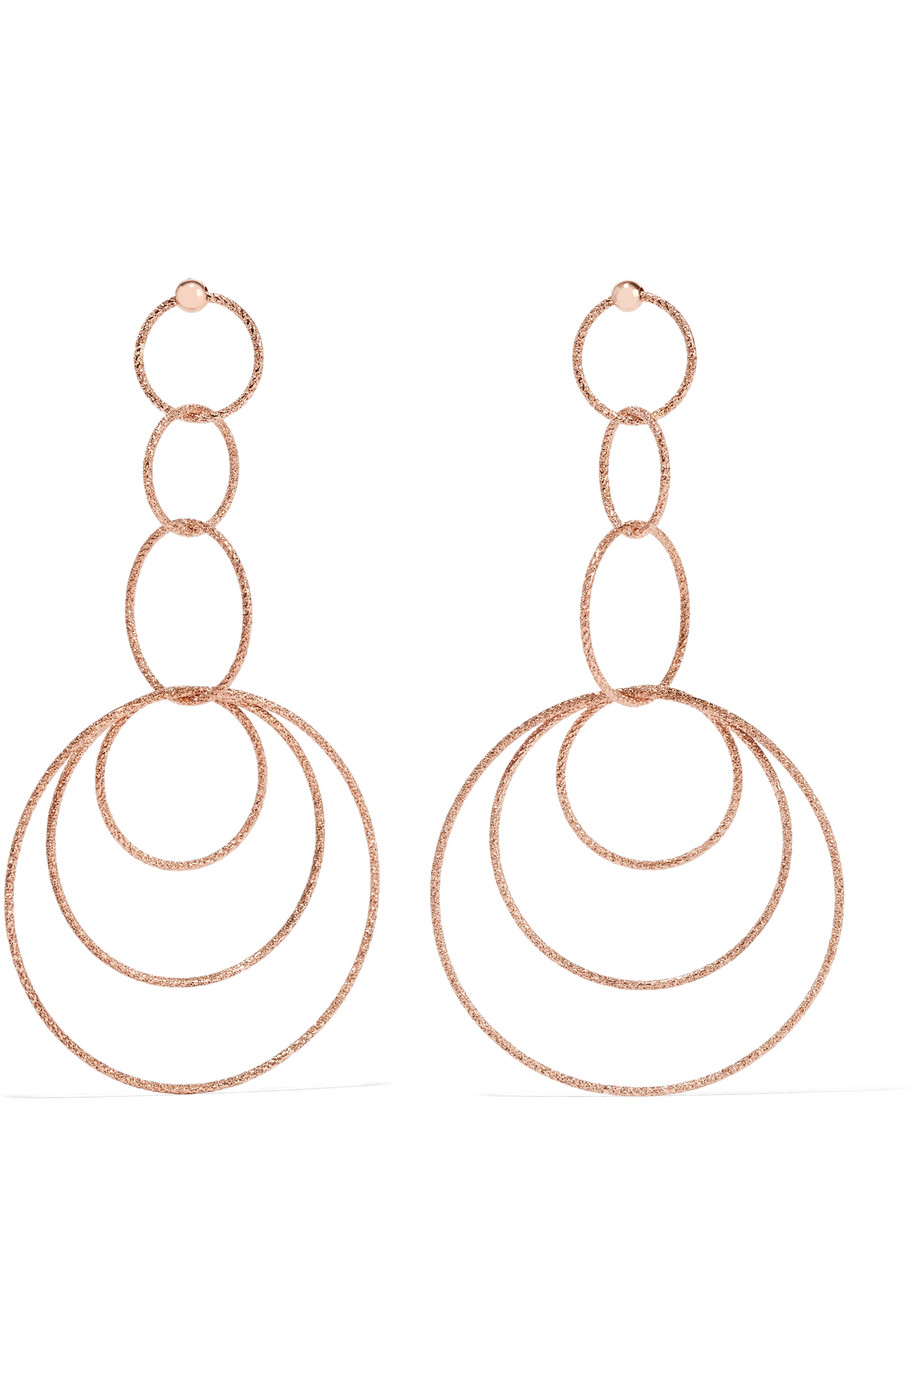 Carolina Bucci 18-Karat Rose Gold Earrings, Women's